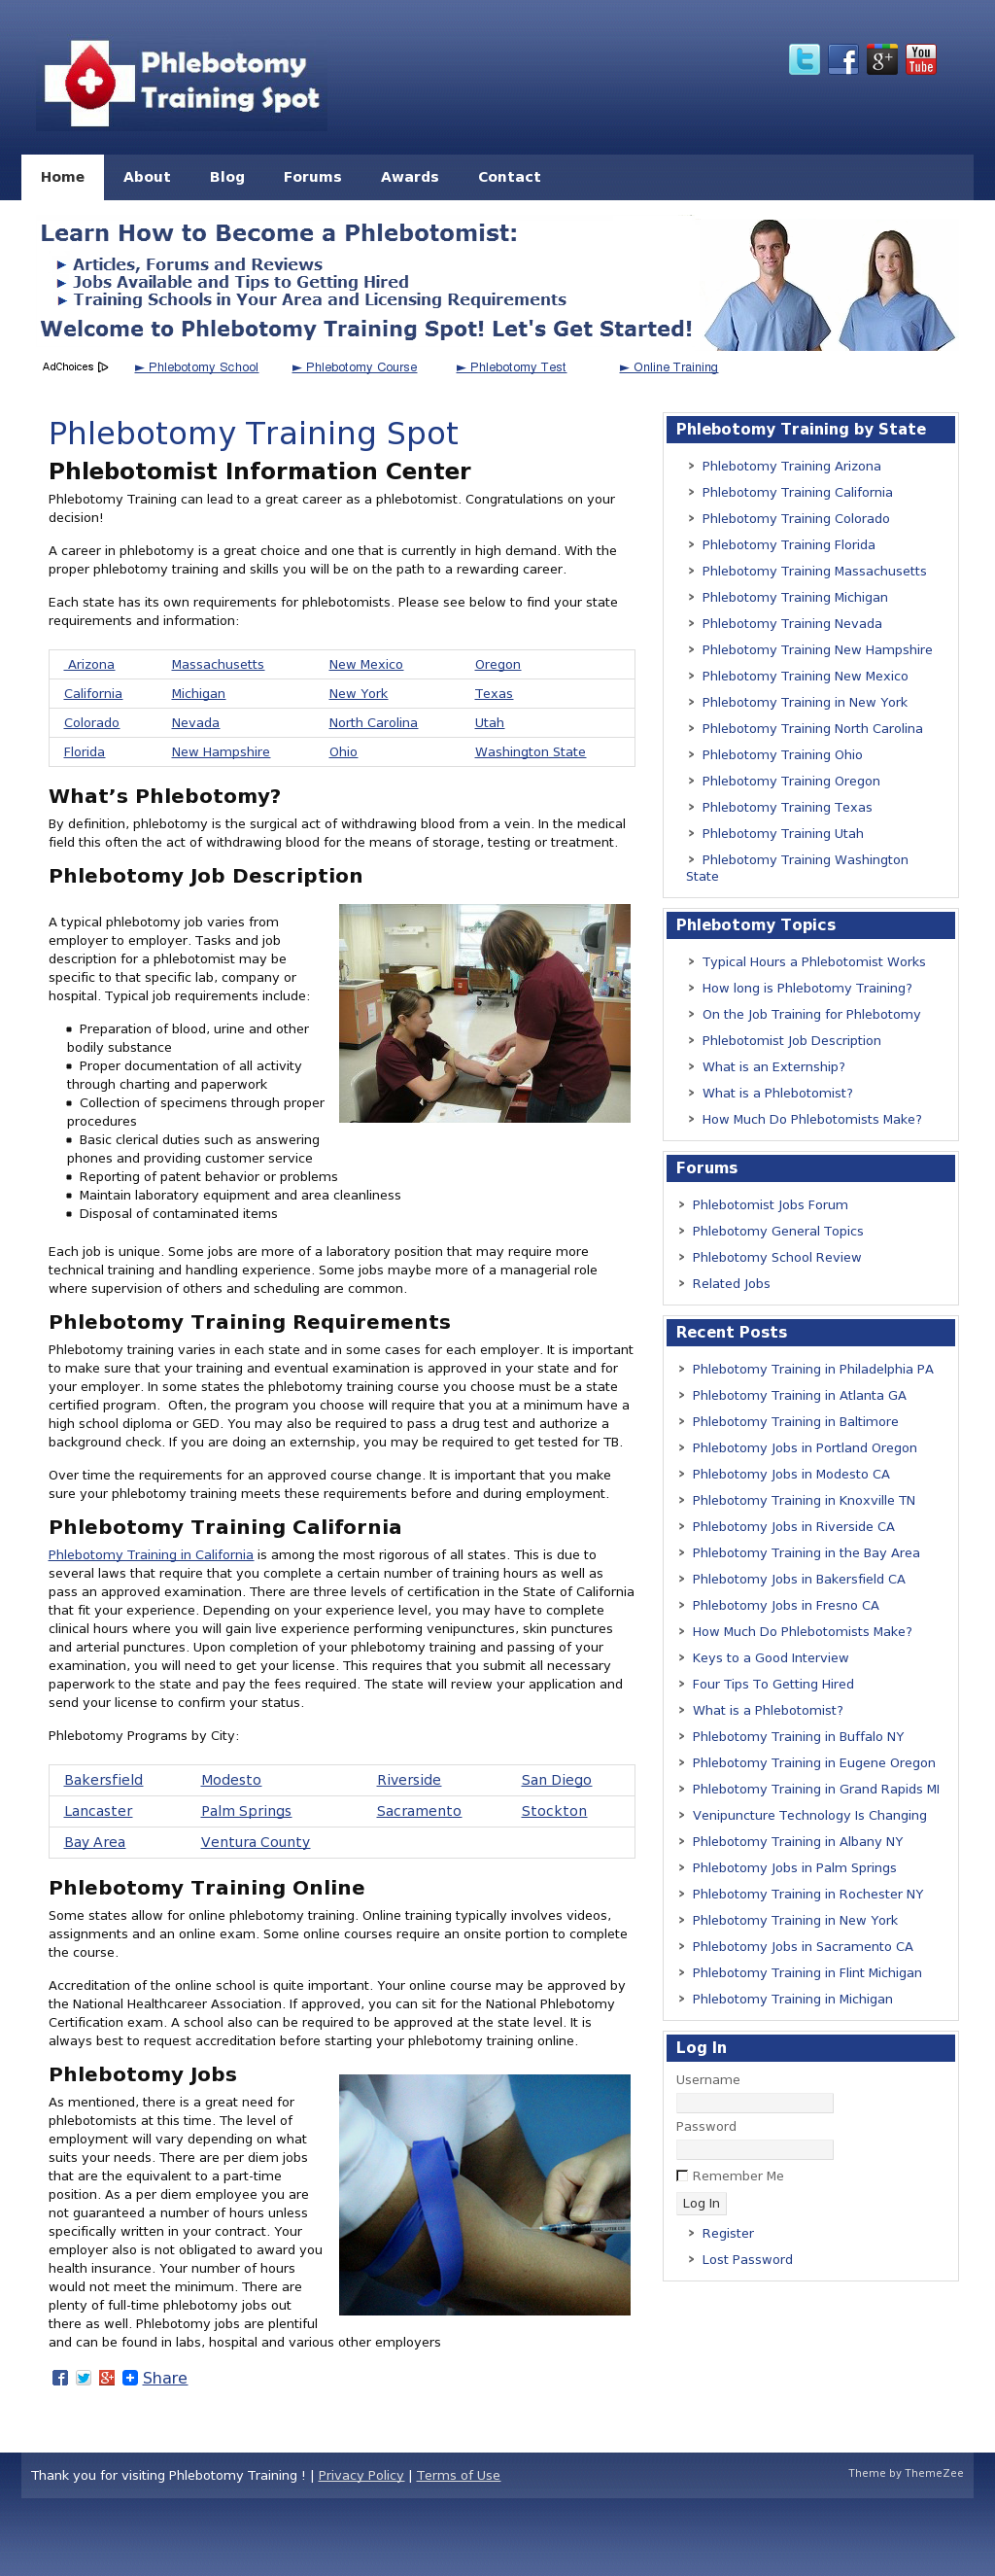 Phlebotomy Training Spot Company Profile Revenue Number Of